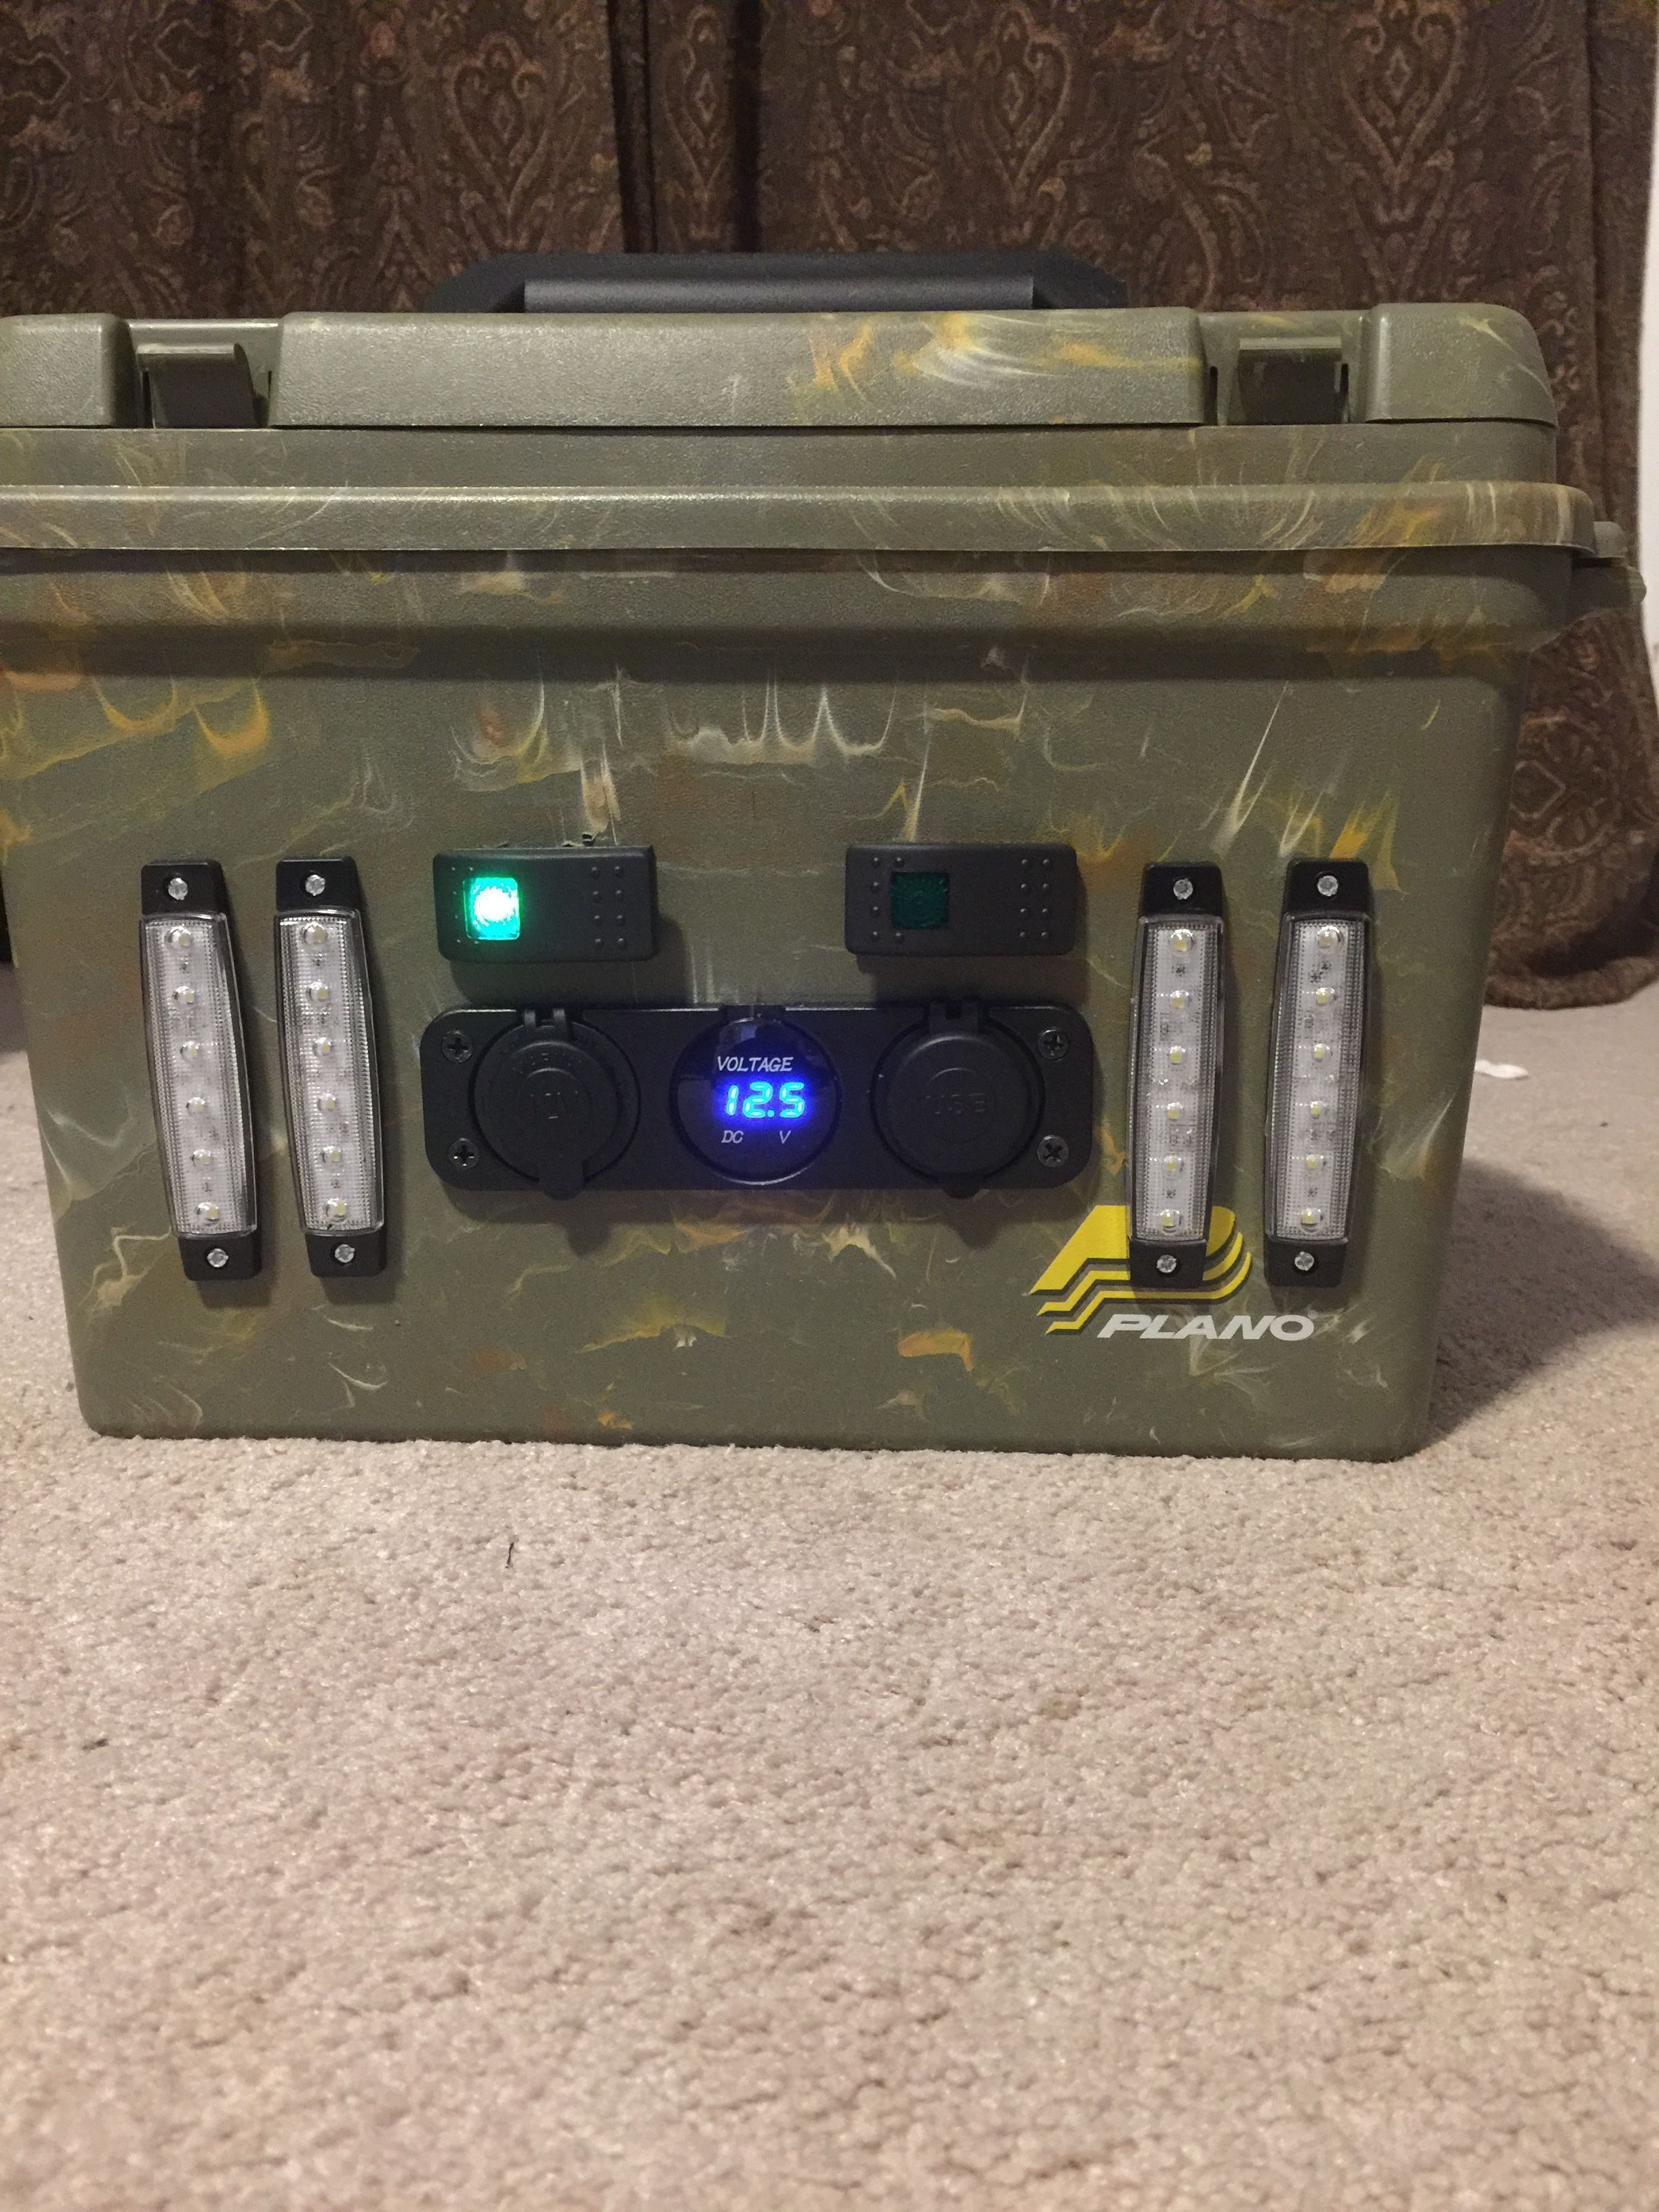 Kayak Battery Box Plano Field Box Two 12 Volt Batteries Wired In Sequence Led Lights Usb Ports And Kayak Fishing Diy Kayak Lights Saltwater Fishing Gear